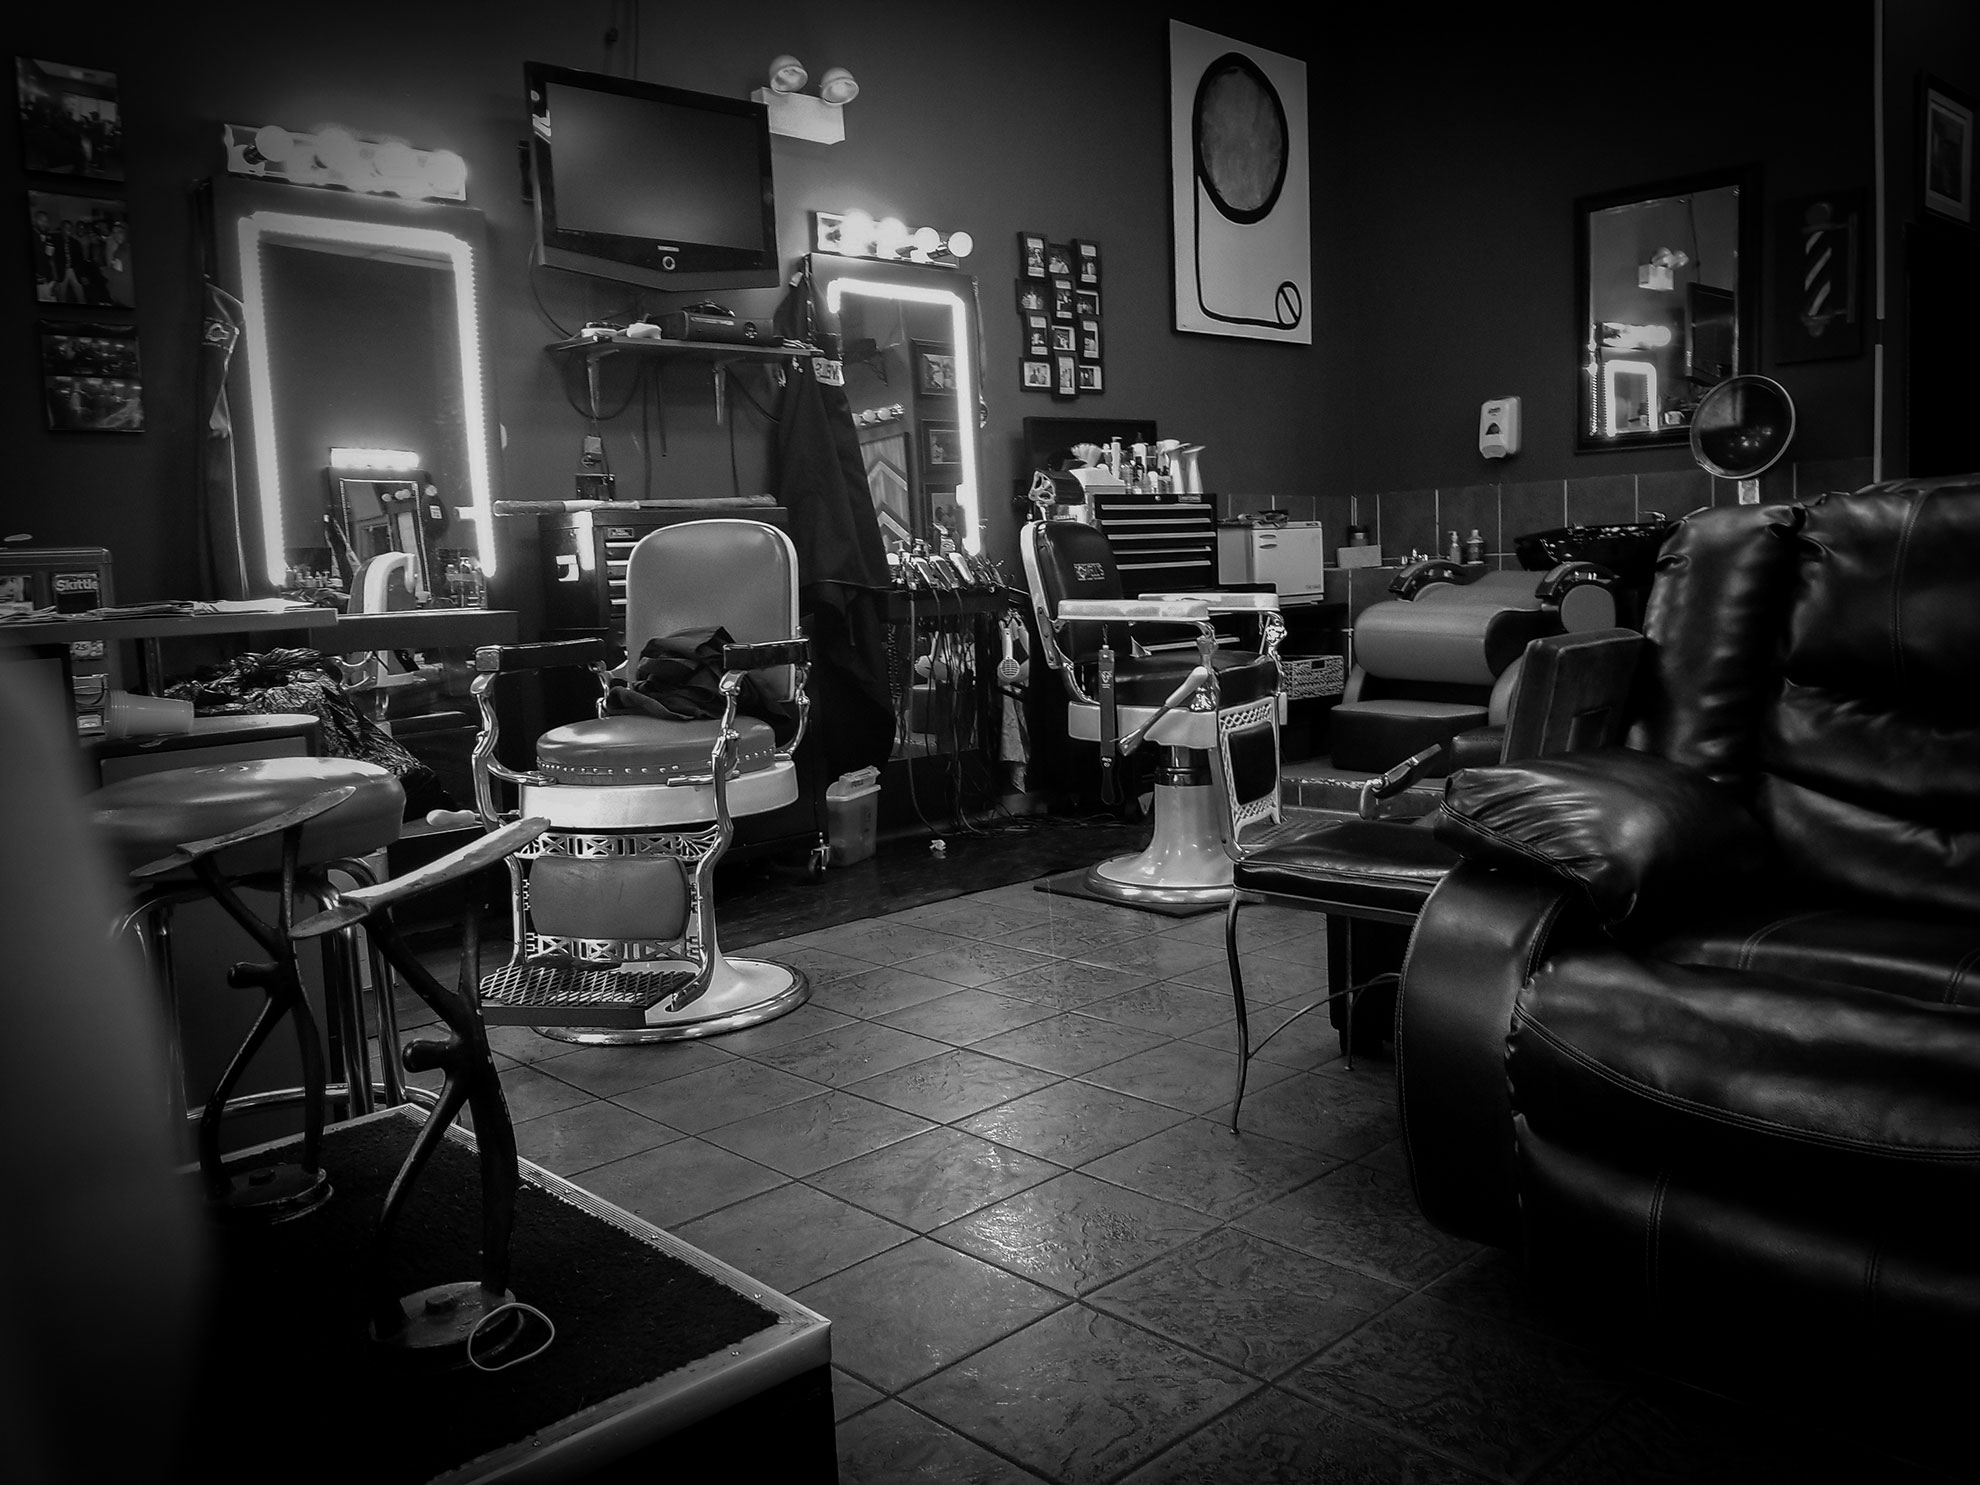 A couple of chairs left unattended at a barber shop in Englewood, a neighborhood on Chicago's South Side.  (Photo  by Manny Ramos/GroundTruth)